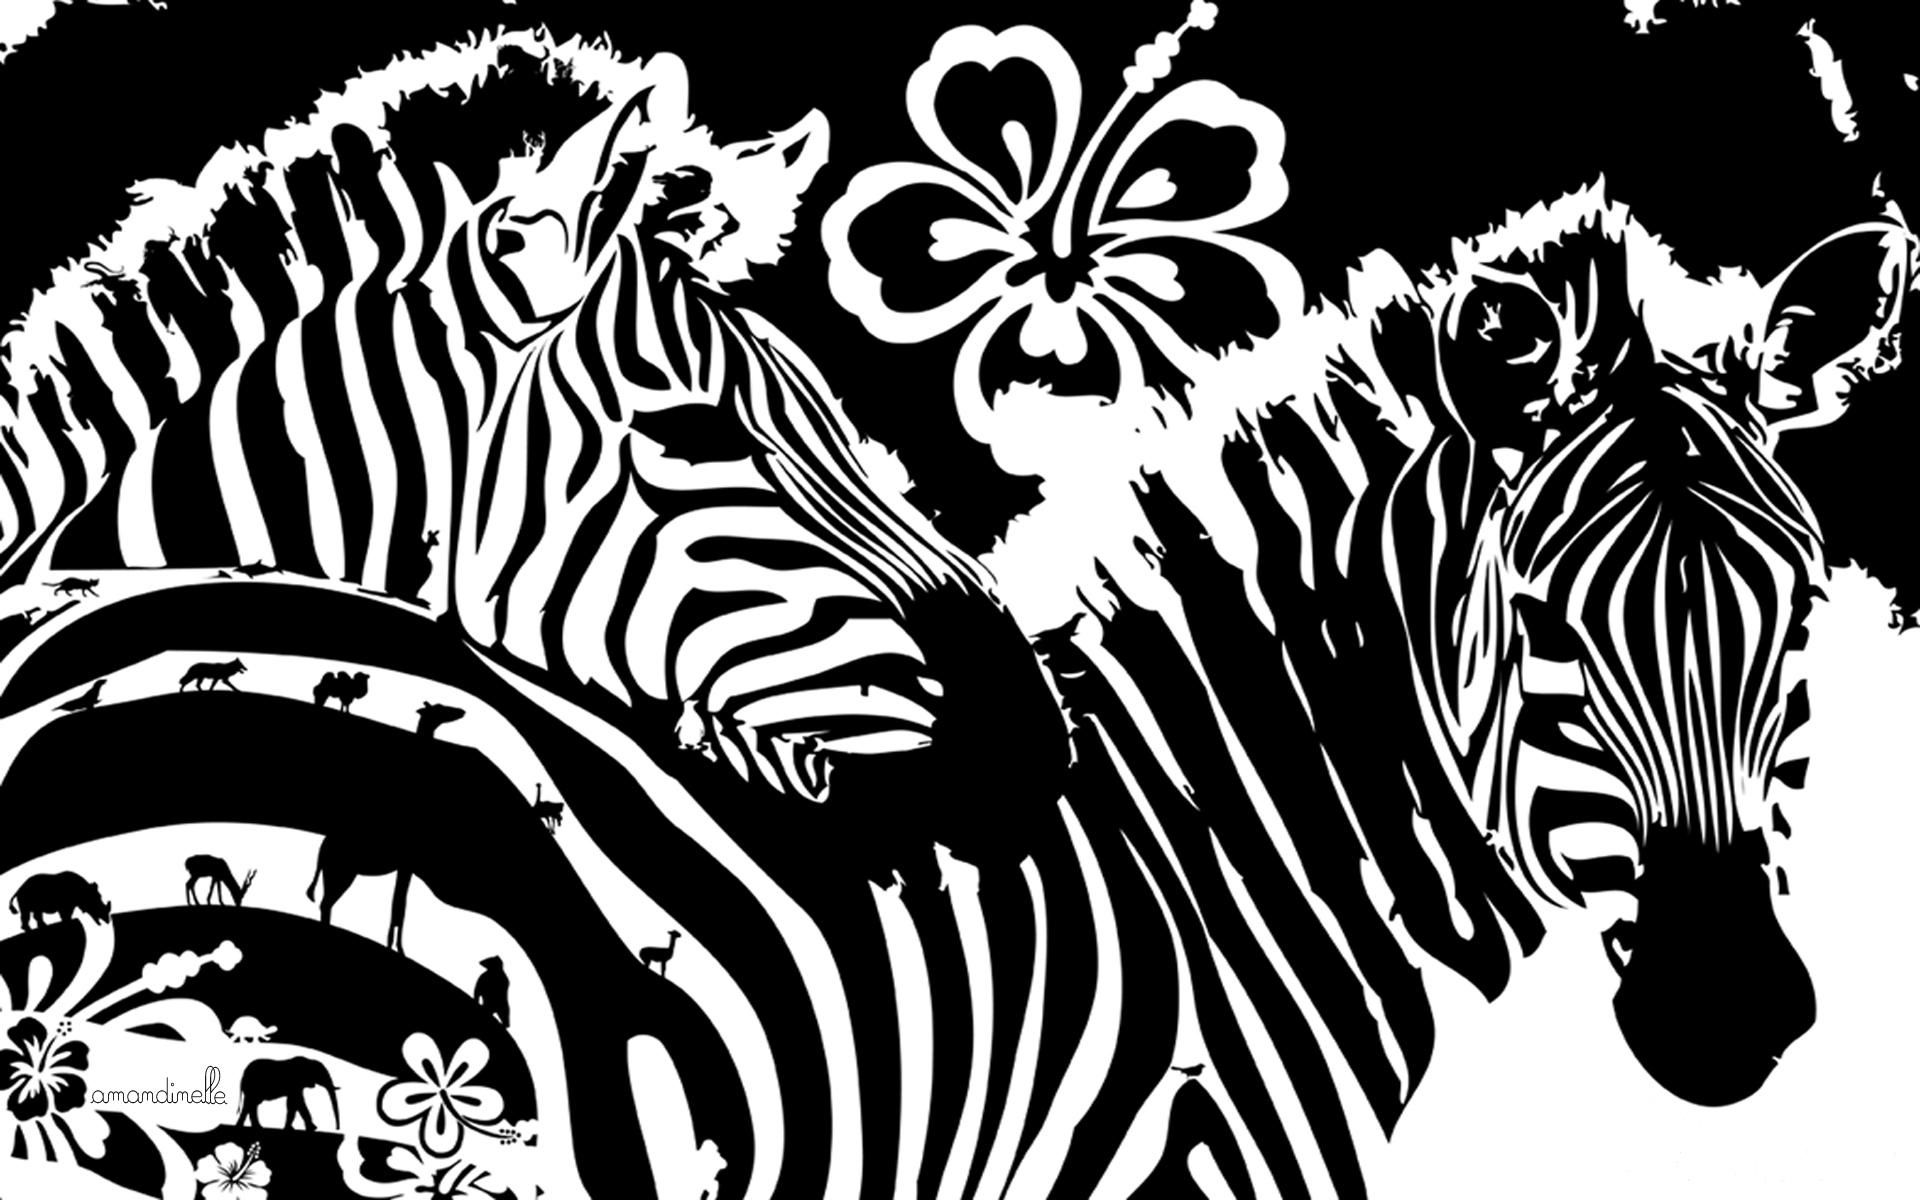 133432 download wallpaper Art, Lines, Graphics, Flowers, Zebra screensavers and pictures for free